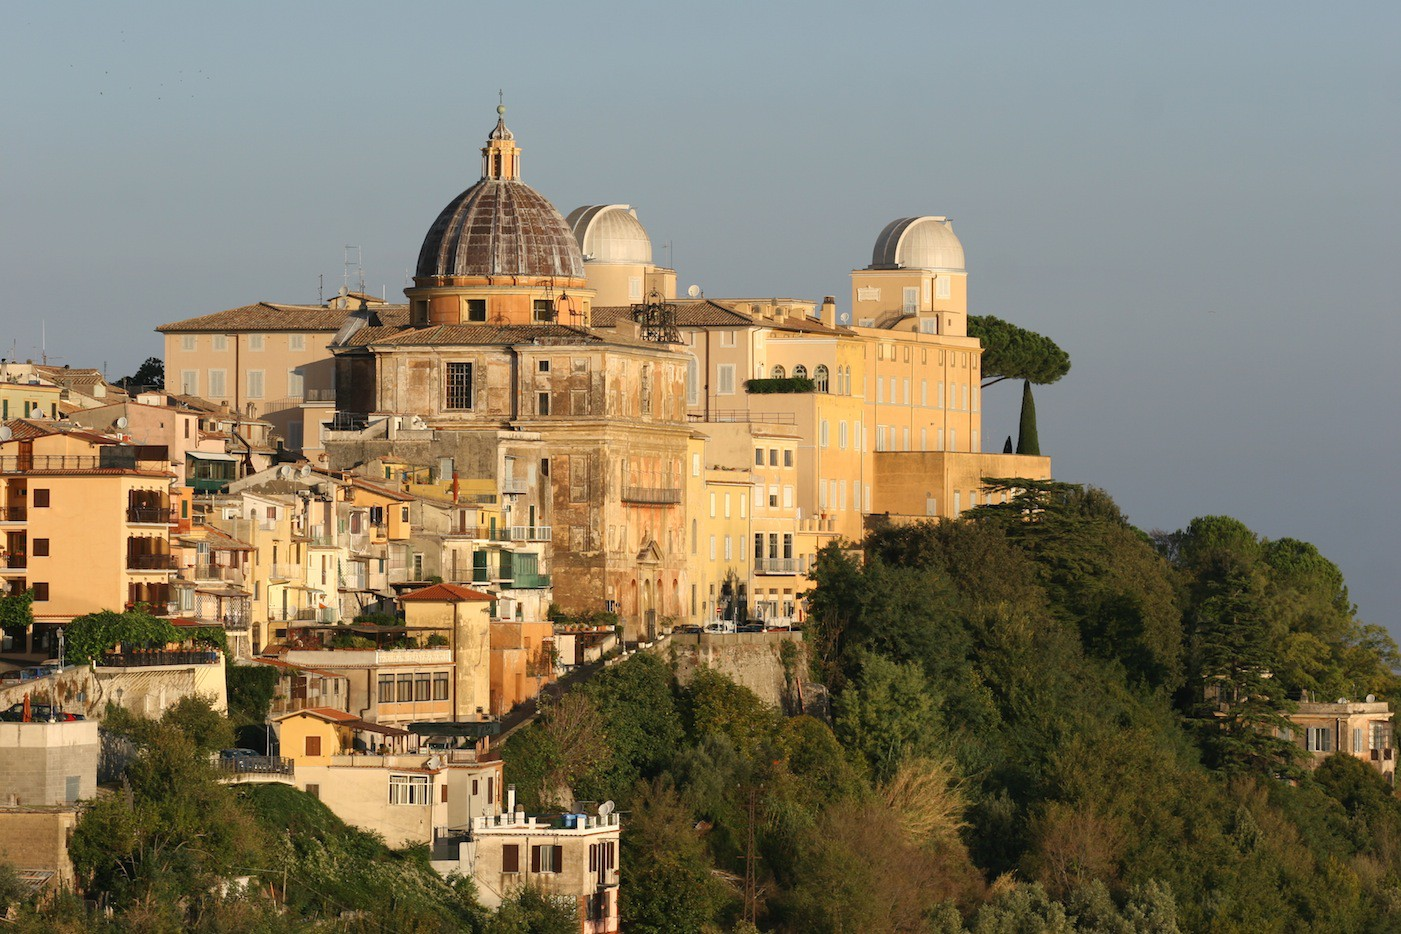 Castel Gandolfo Rome Information the best site on tourism in rome